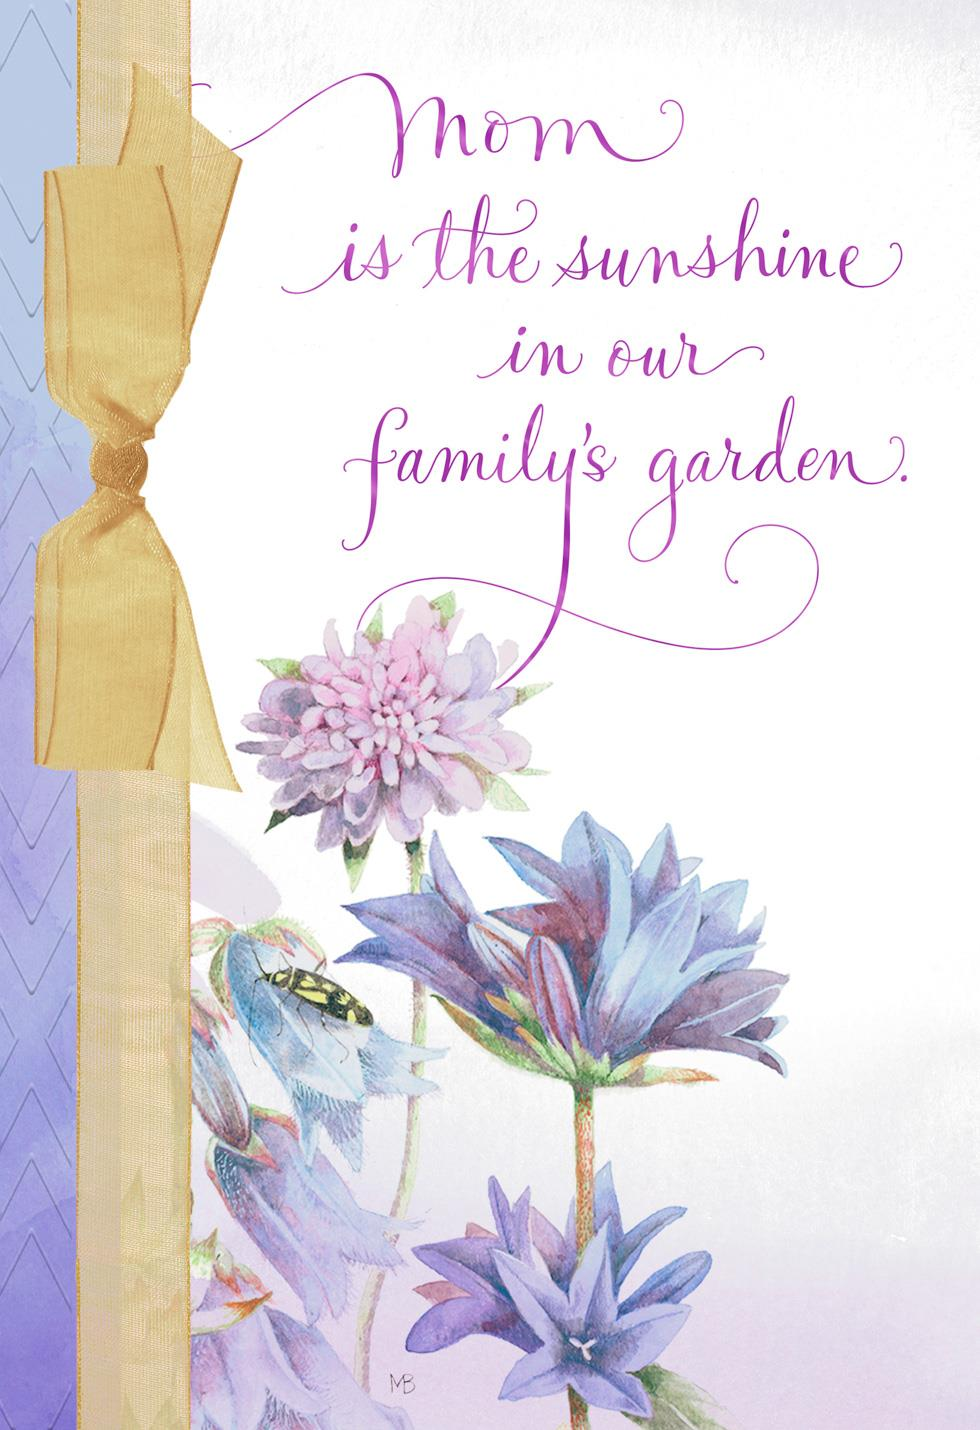 You are sunshine marjolein bastin mothers day card greeting cards you are sunshine marjolein bastin mothers day card m4hsunfo